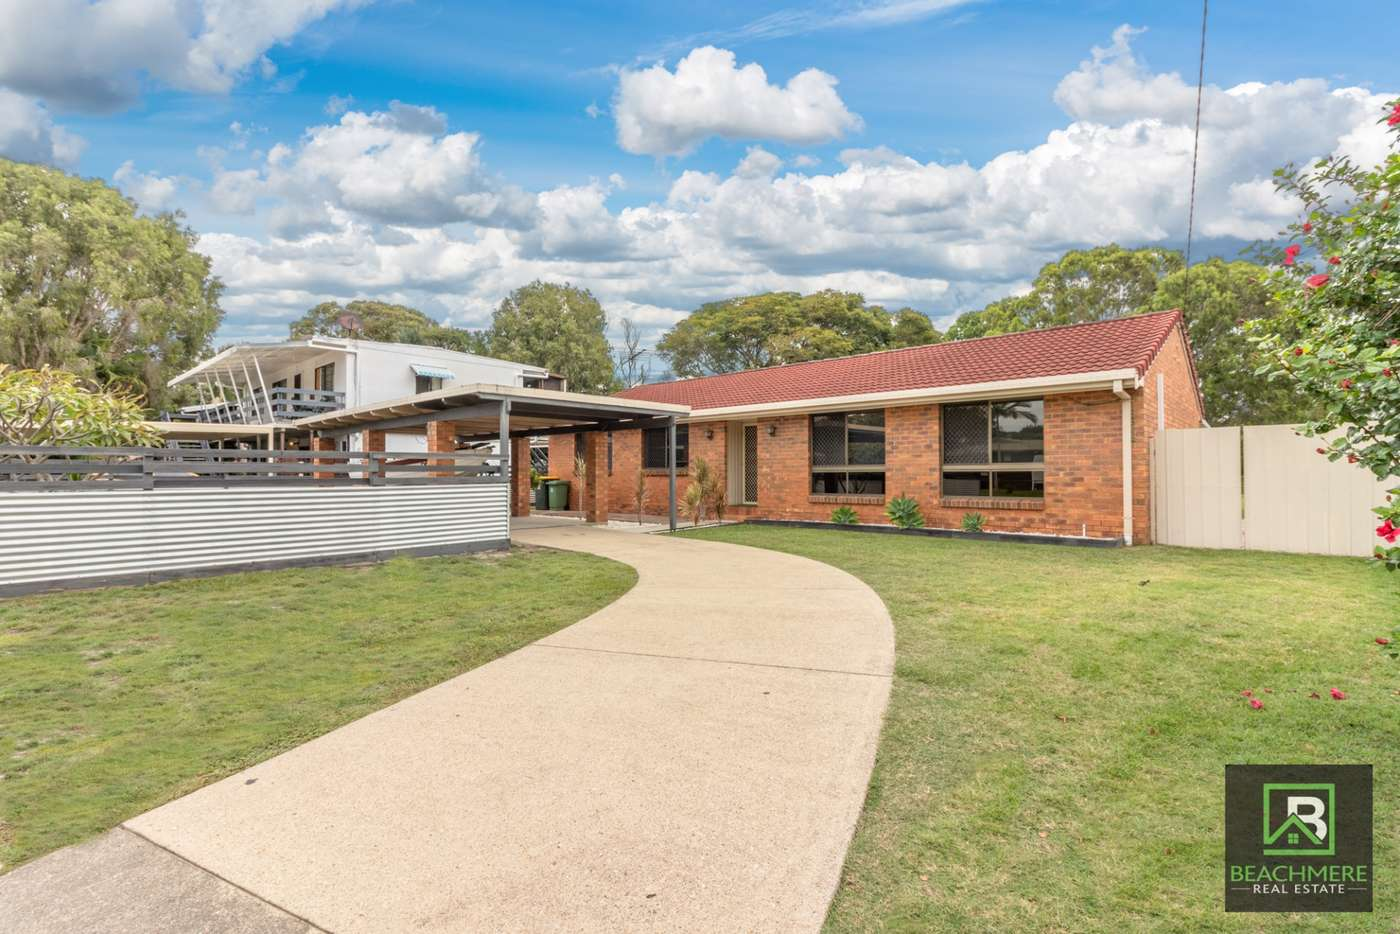 Main view of Homely house listing, 41 Patrick Street, Beachmere QLD 4510